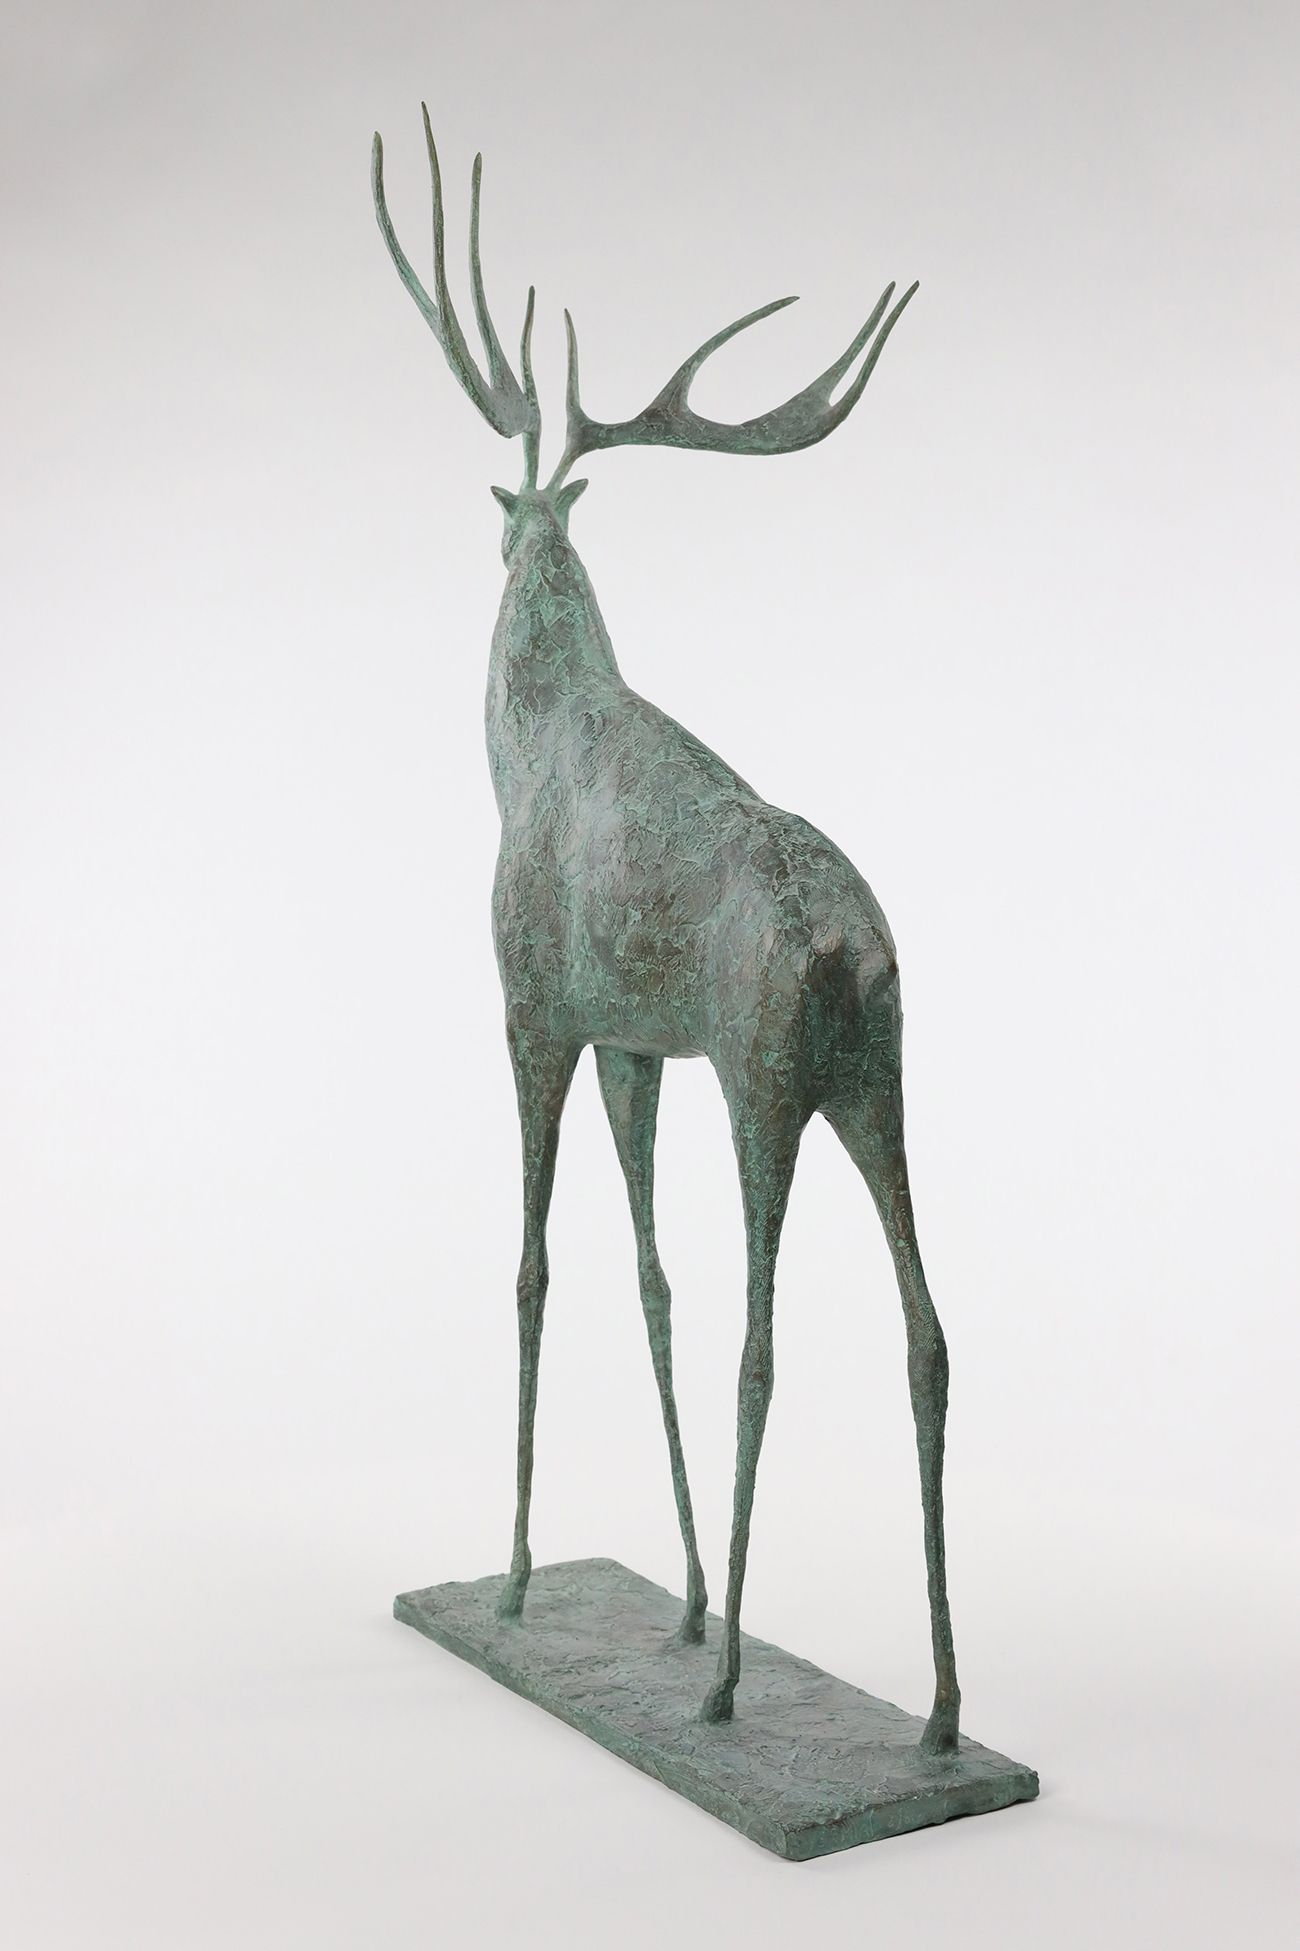 Cerf II,Pierre Yermia,Sculpture contemporaine, detail 3